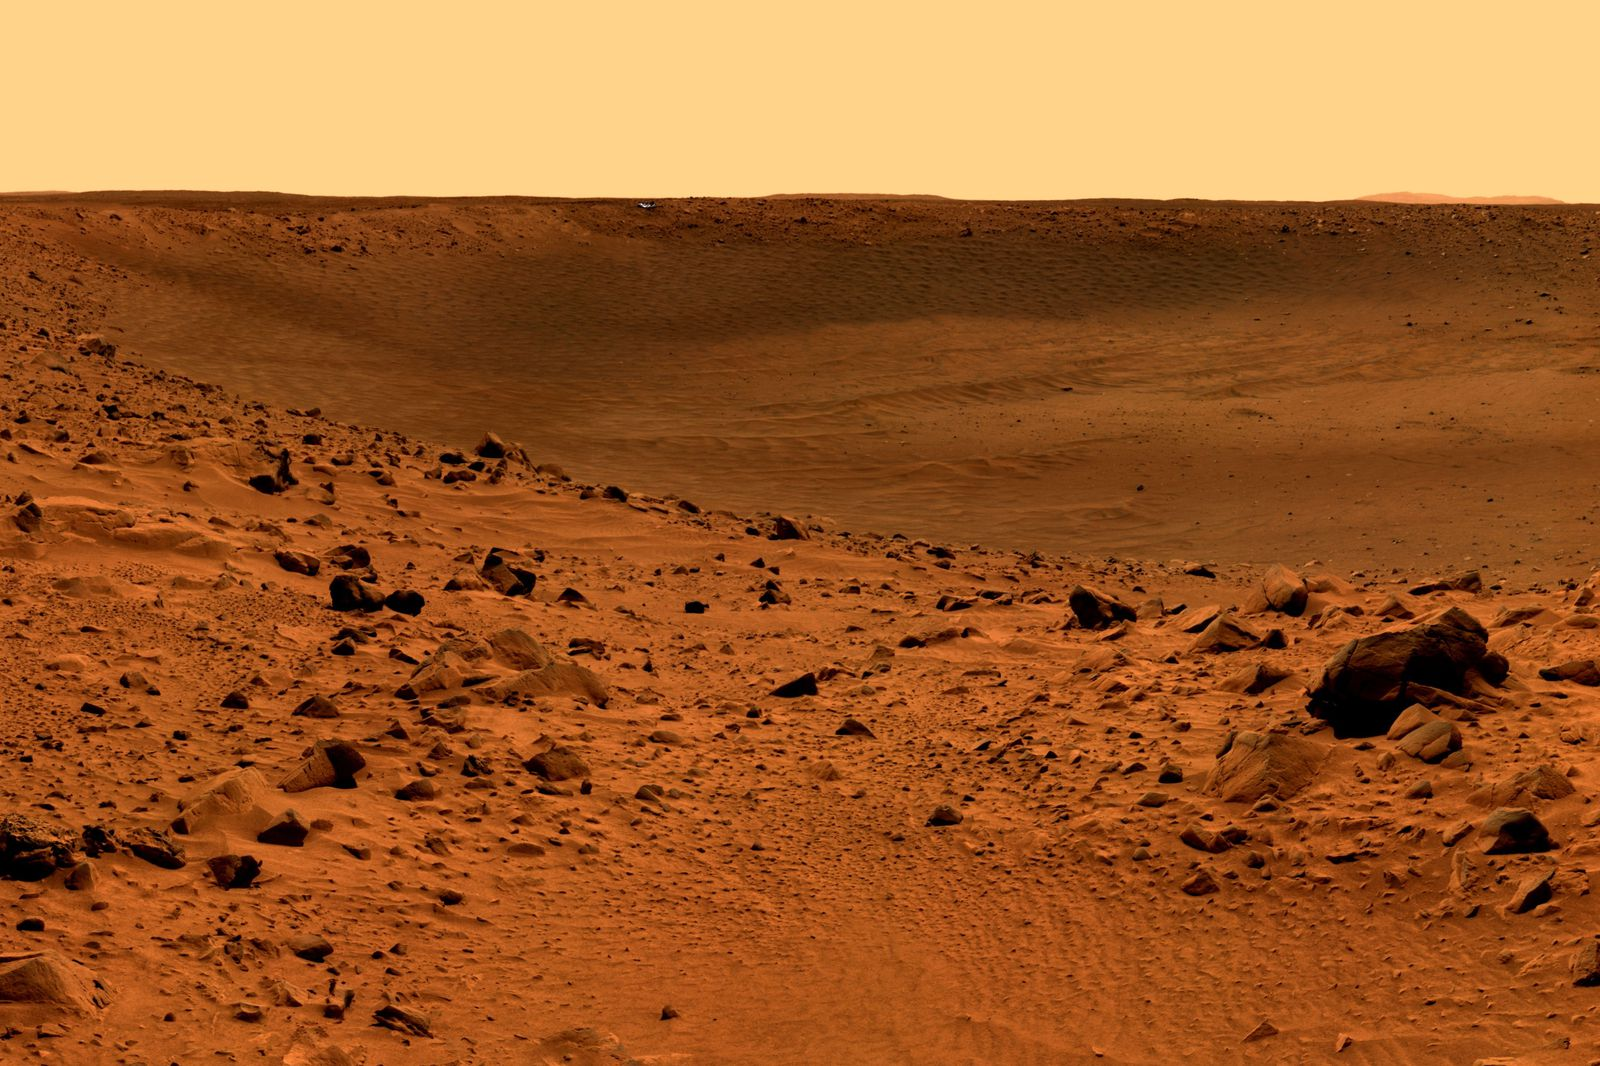 1619201366 211 How will NASA generate electricity on Mars How will NASA generate electricity on Mars? 10